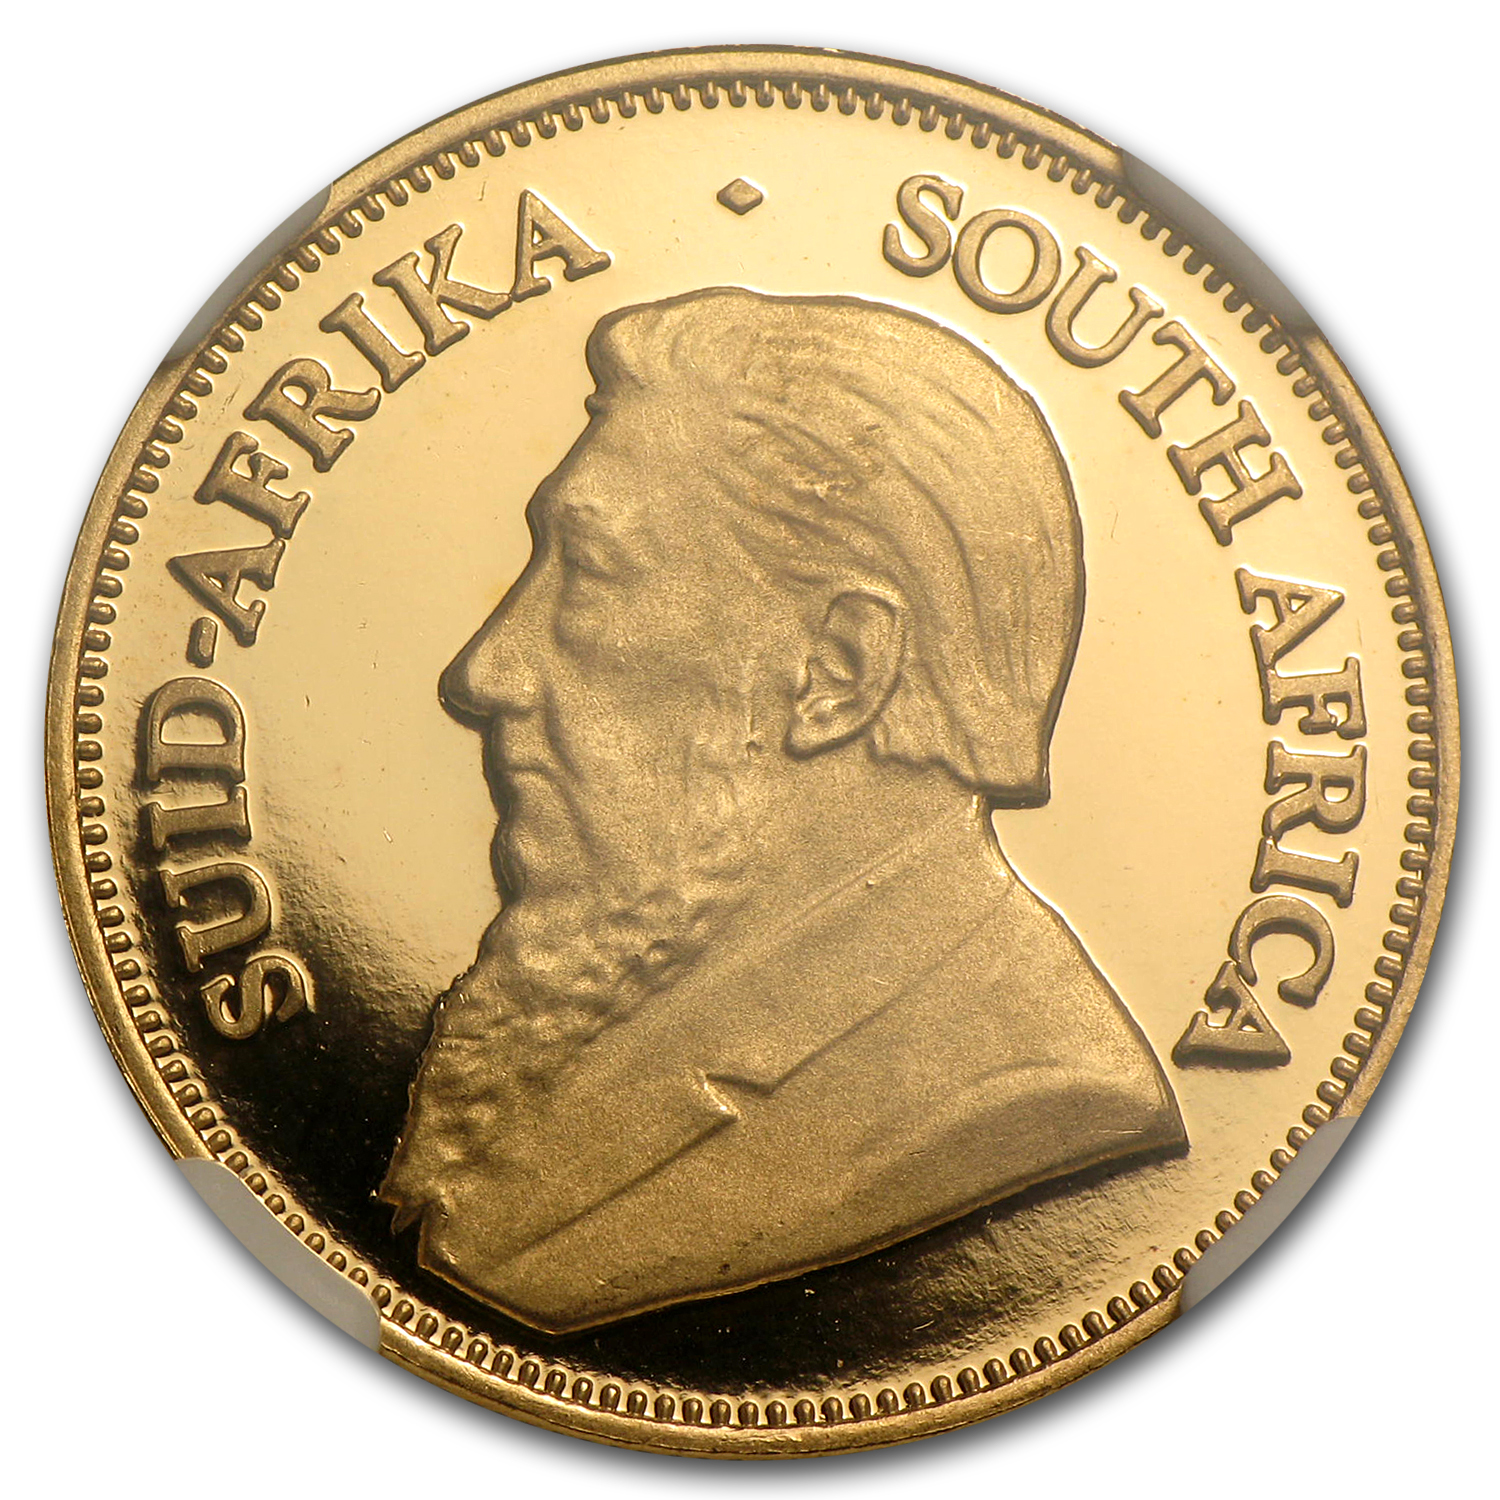 2005 South Africa 1/4 oz Gold Krugerrand PF-66 NGC